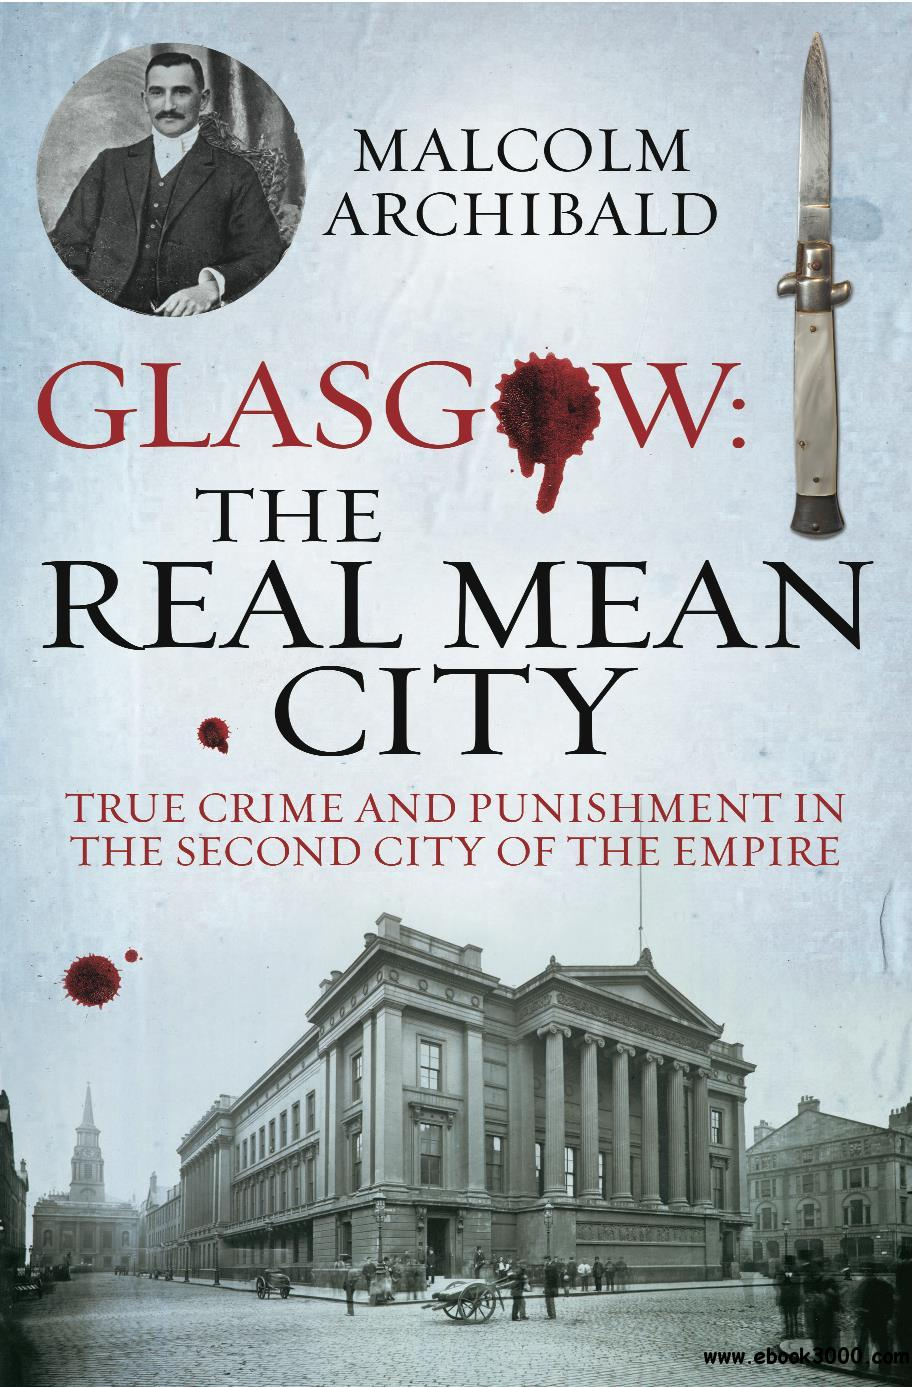 Glasgow: The Real Mean City: True Crime and Punishment in the Second City of Empire free download